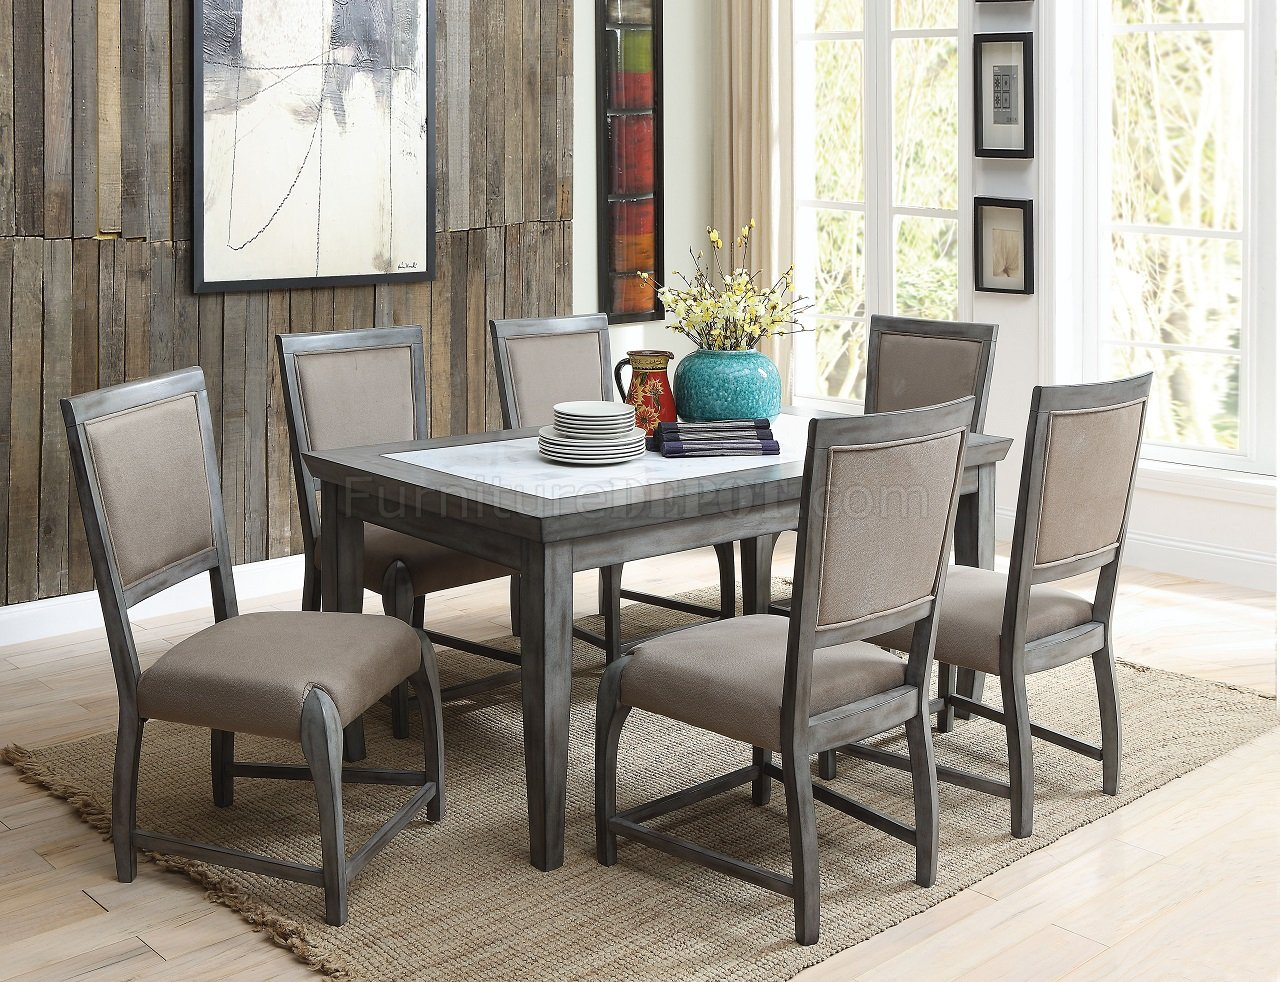 Freira Dining Set 5pc 72115 In Antique Gray By Acme W Options